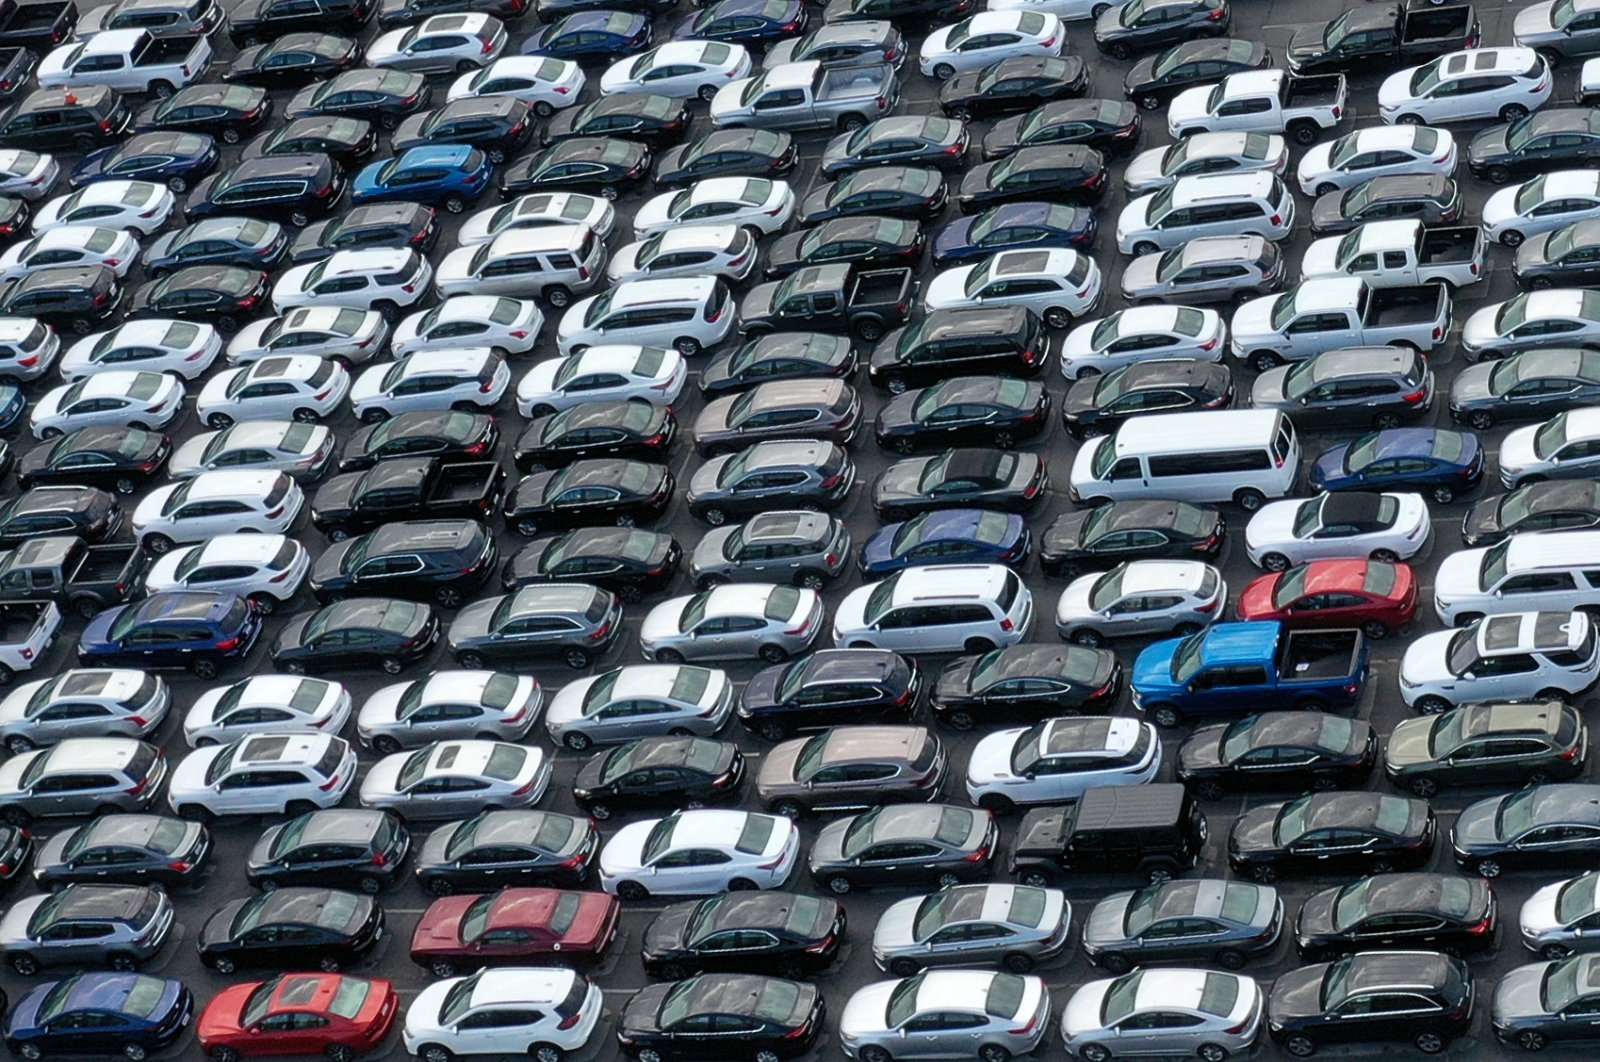 Unused rental cars fill the Dodger Stadium parking lot as the spread of the coronavirus continues, Los Angeles, California, April 7, 2020. (Reuters Photo)